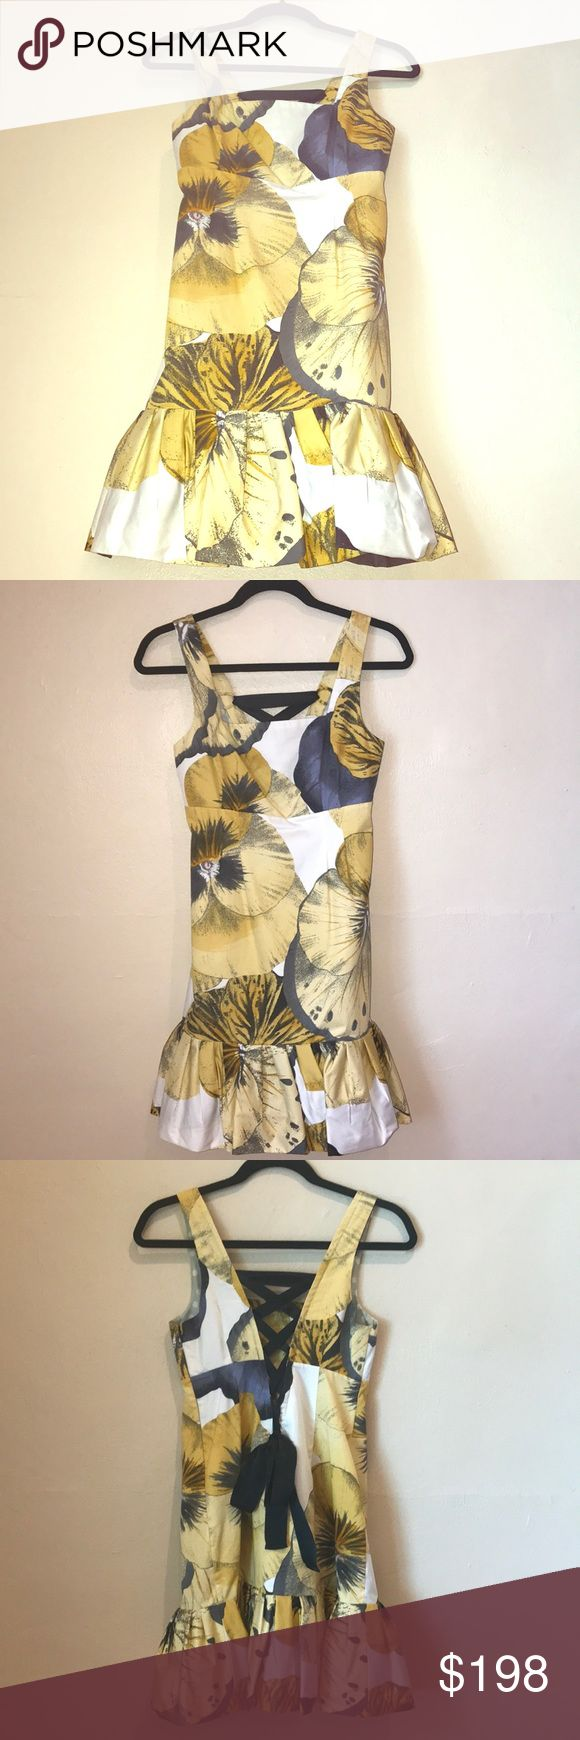 """NWT Anthropologie Leifsdottir Sz2 Super-cute Dress Feel super rich in this! The fabric is awesome. Sz2 *NWT*LEIFSDOTTIR-Anthropologie yellow/gold/gray/black/white/pink . I would totally wear this in the Fall. Too cute•34""""L•14""""underarms•13""""Empire Waist•13.75"""" Waist•15""""Hips•Dry-Clean only. Feel free to ask questions. Thanks so much! Anthropologie Dresses Mini"""